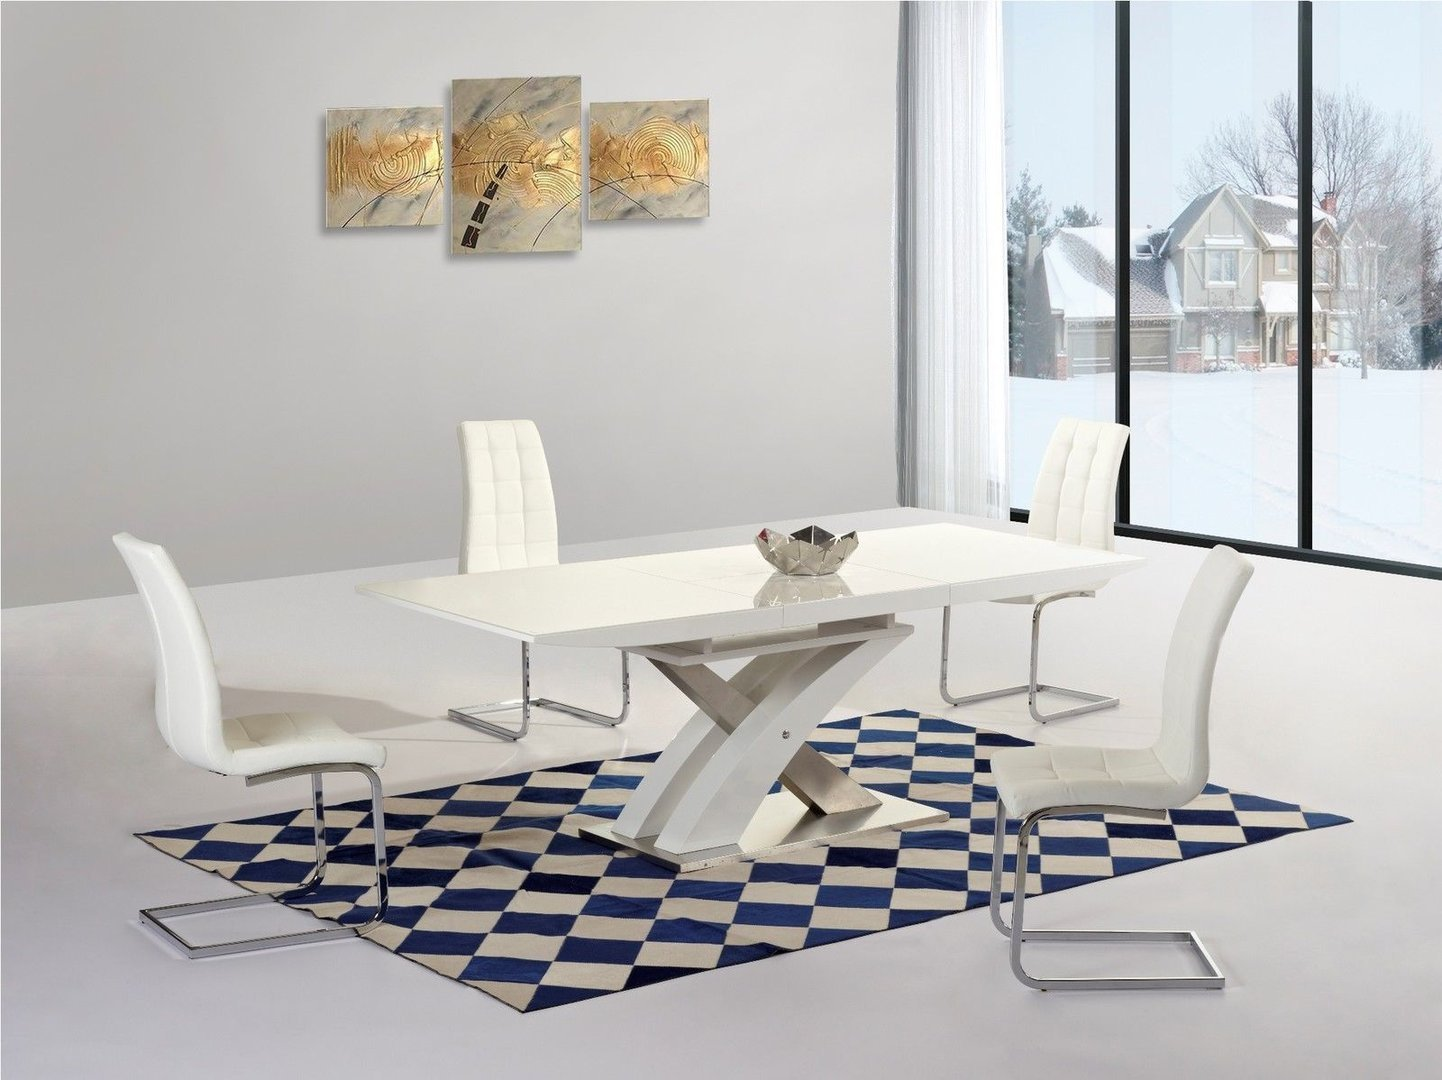 White Extending gloss dining table and 4 chairs Homegenies : whitehighglossglassextendingdiningtableand4whitechairsset from www.homegenies.co.uk size 1442 x 1080 jpeg 174kB